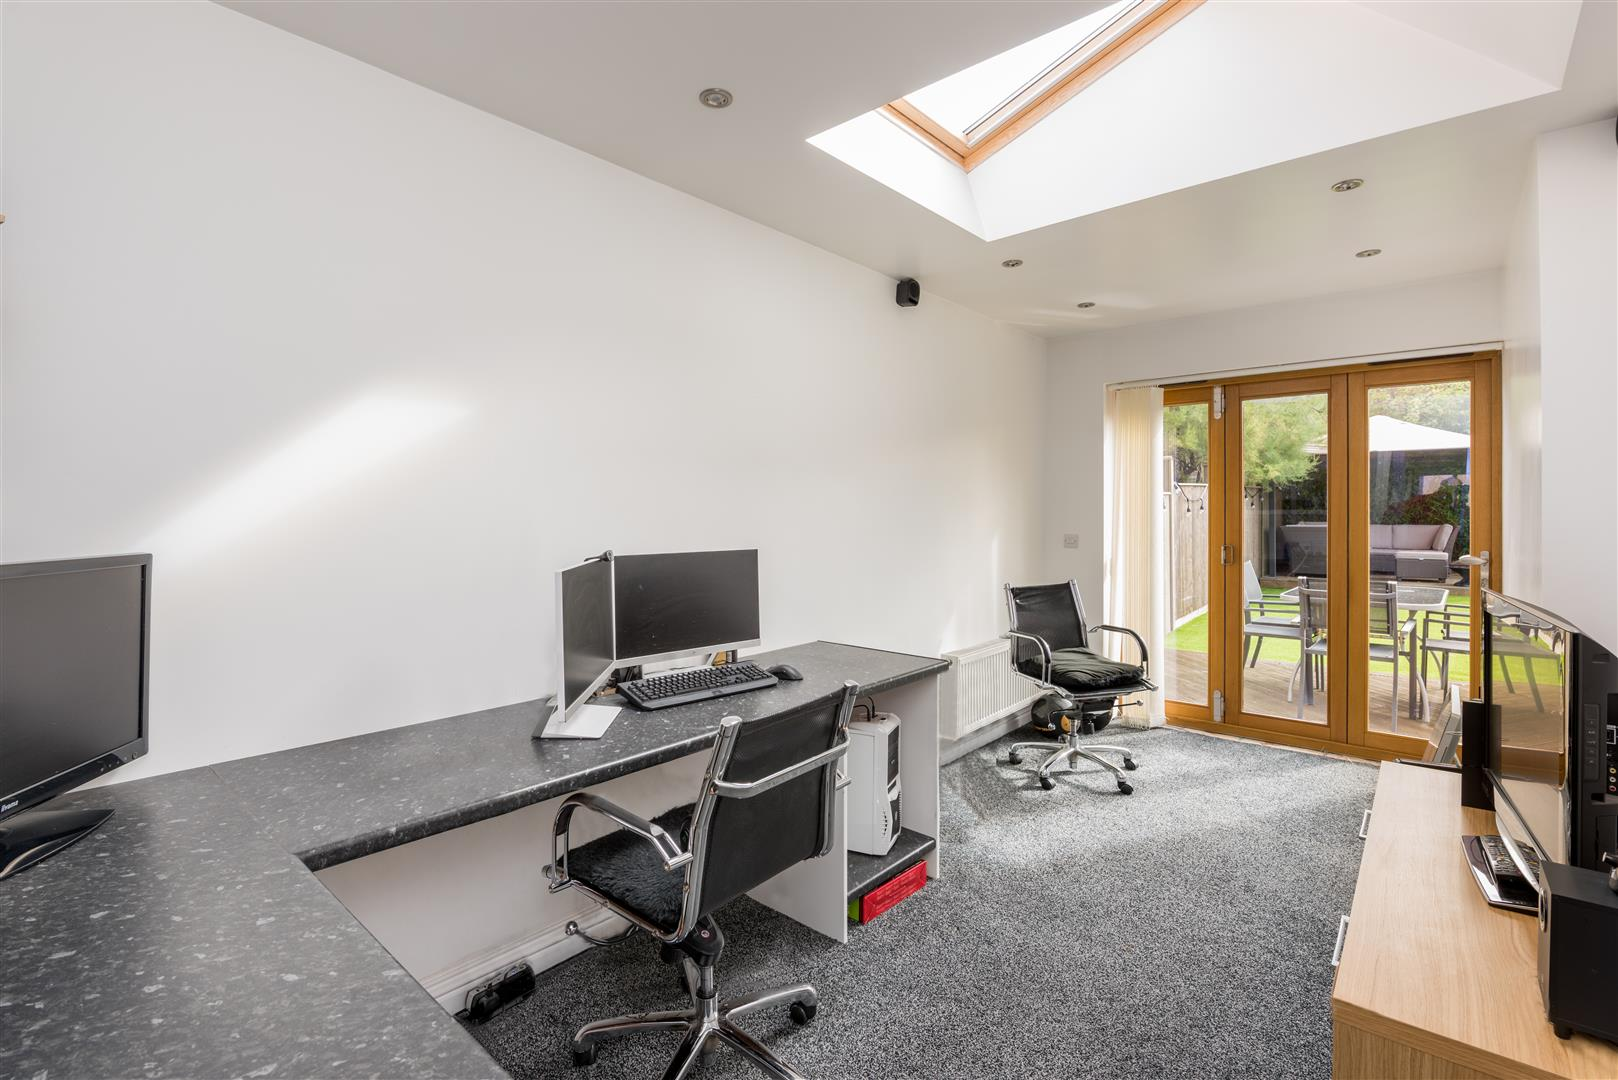 3 bed house for sale in Fallodon Way, Bristol  - Property Image 4